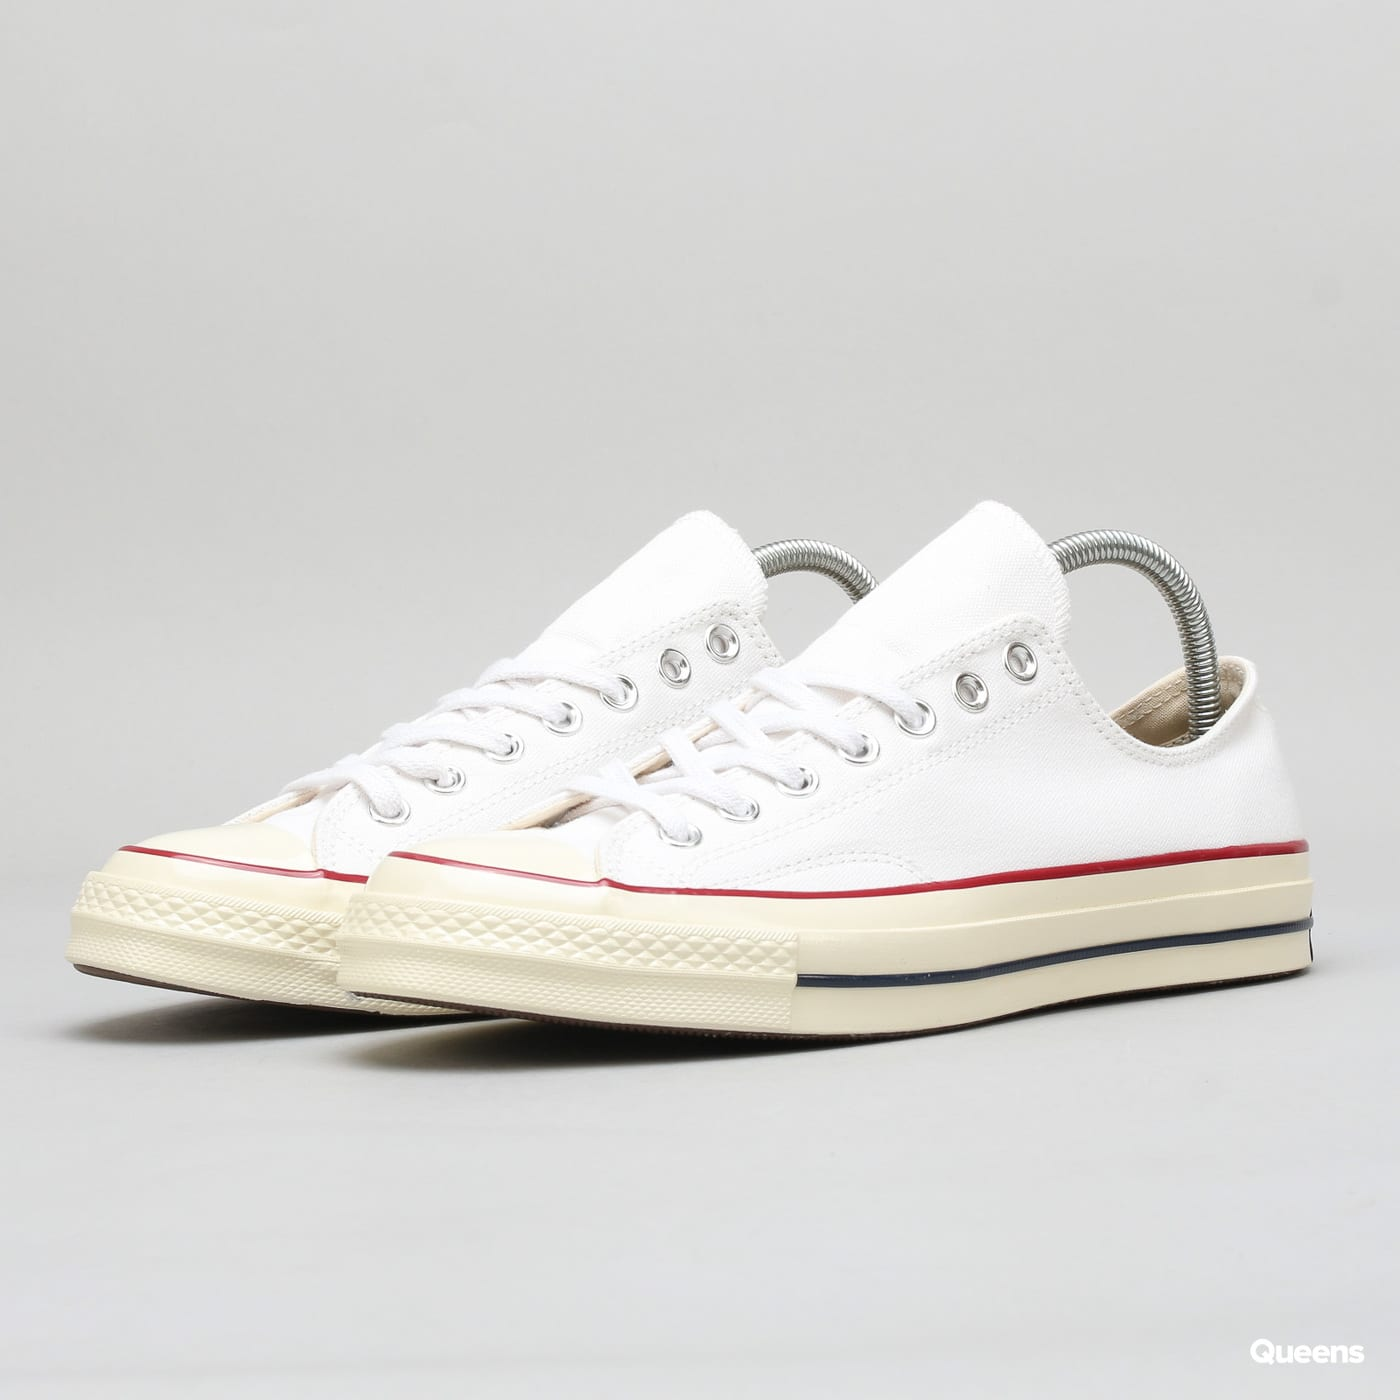 b384205df4a Boty Converse Chuck Taylor All Star 70 OX (C162065) – Queens 💚